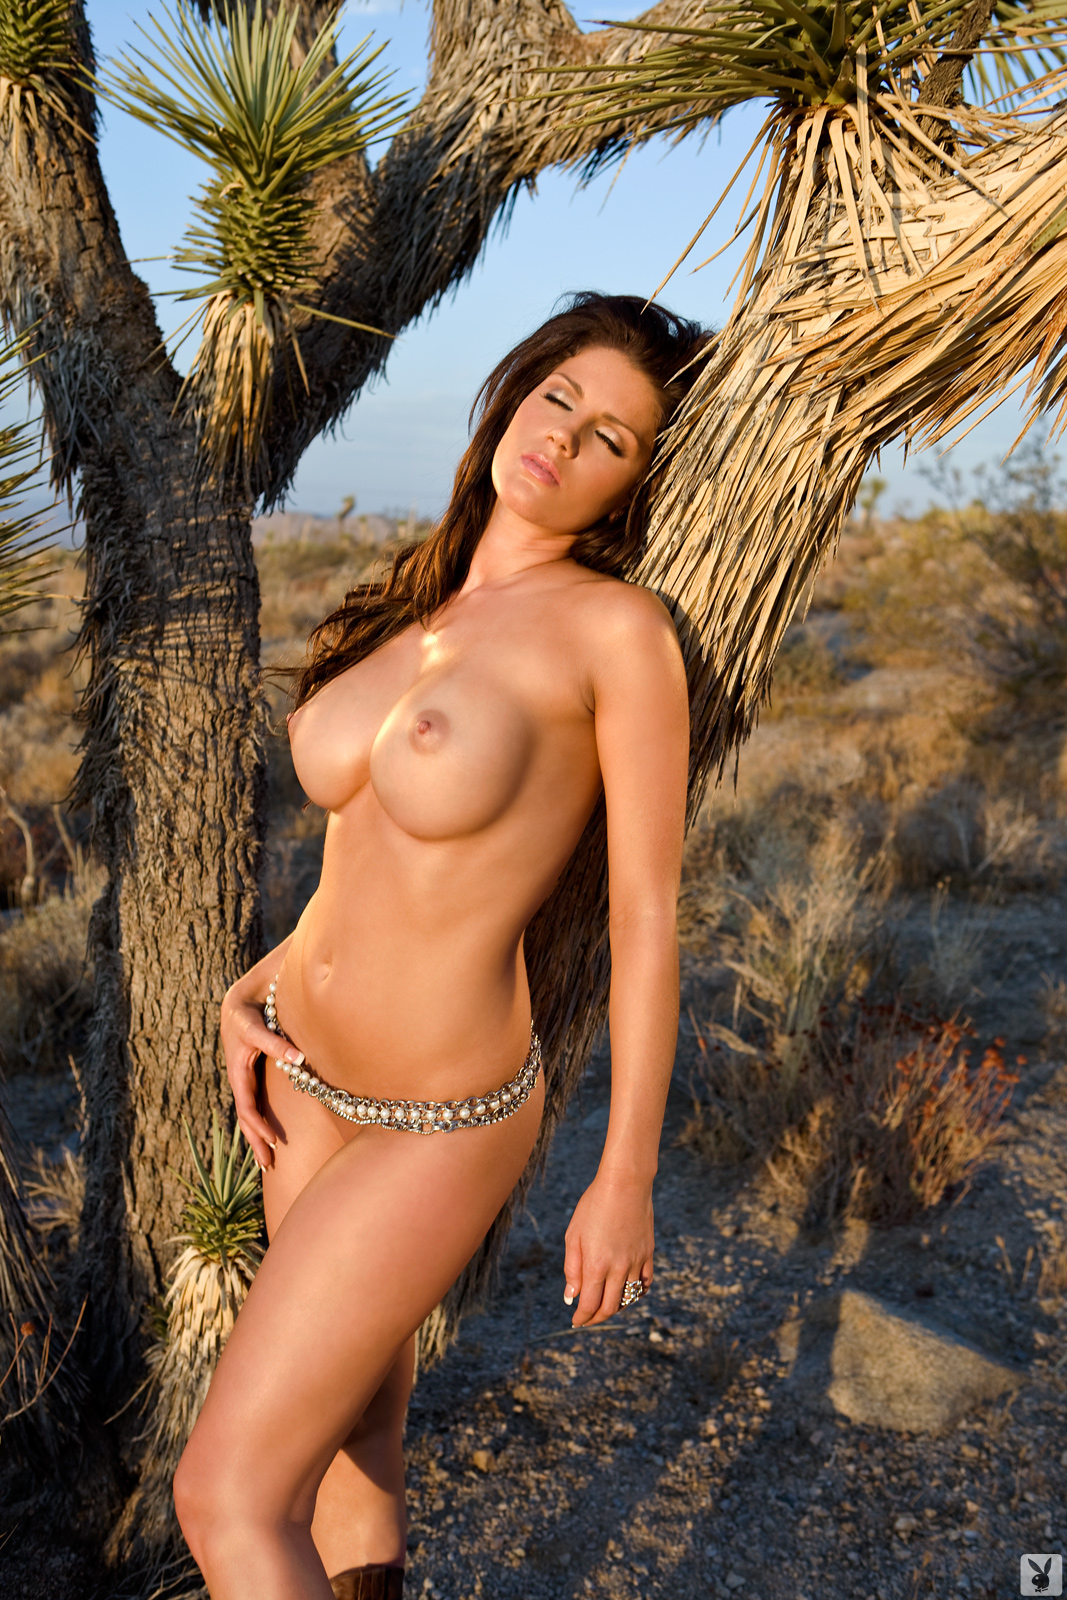 mccahill pictures nude Crystal